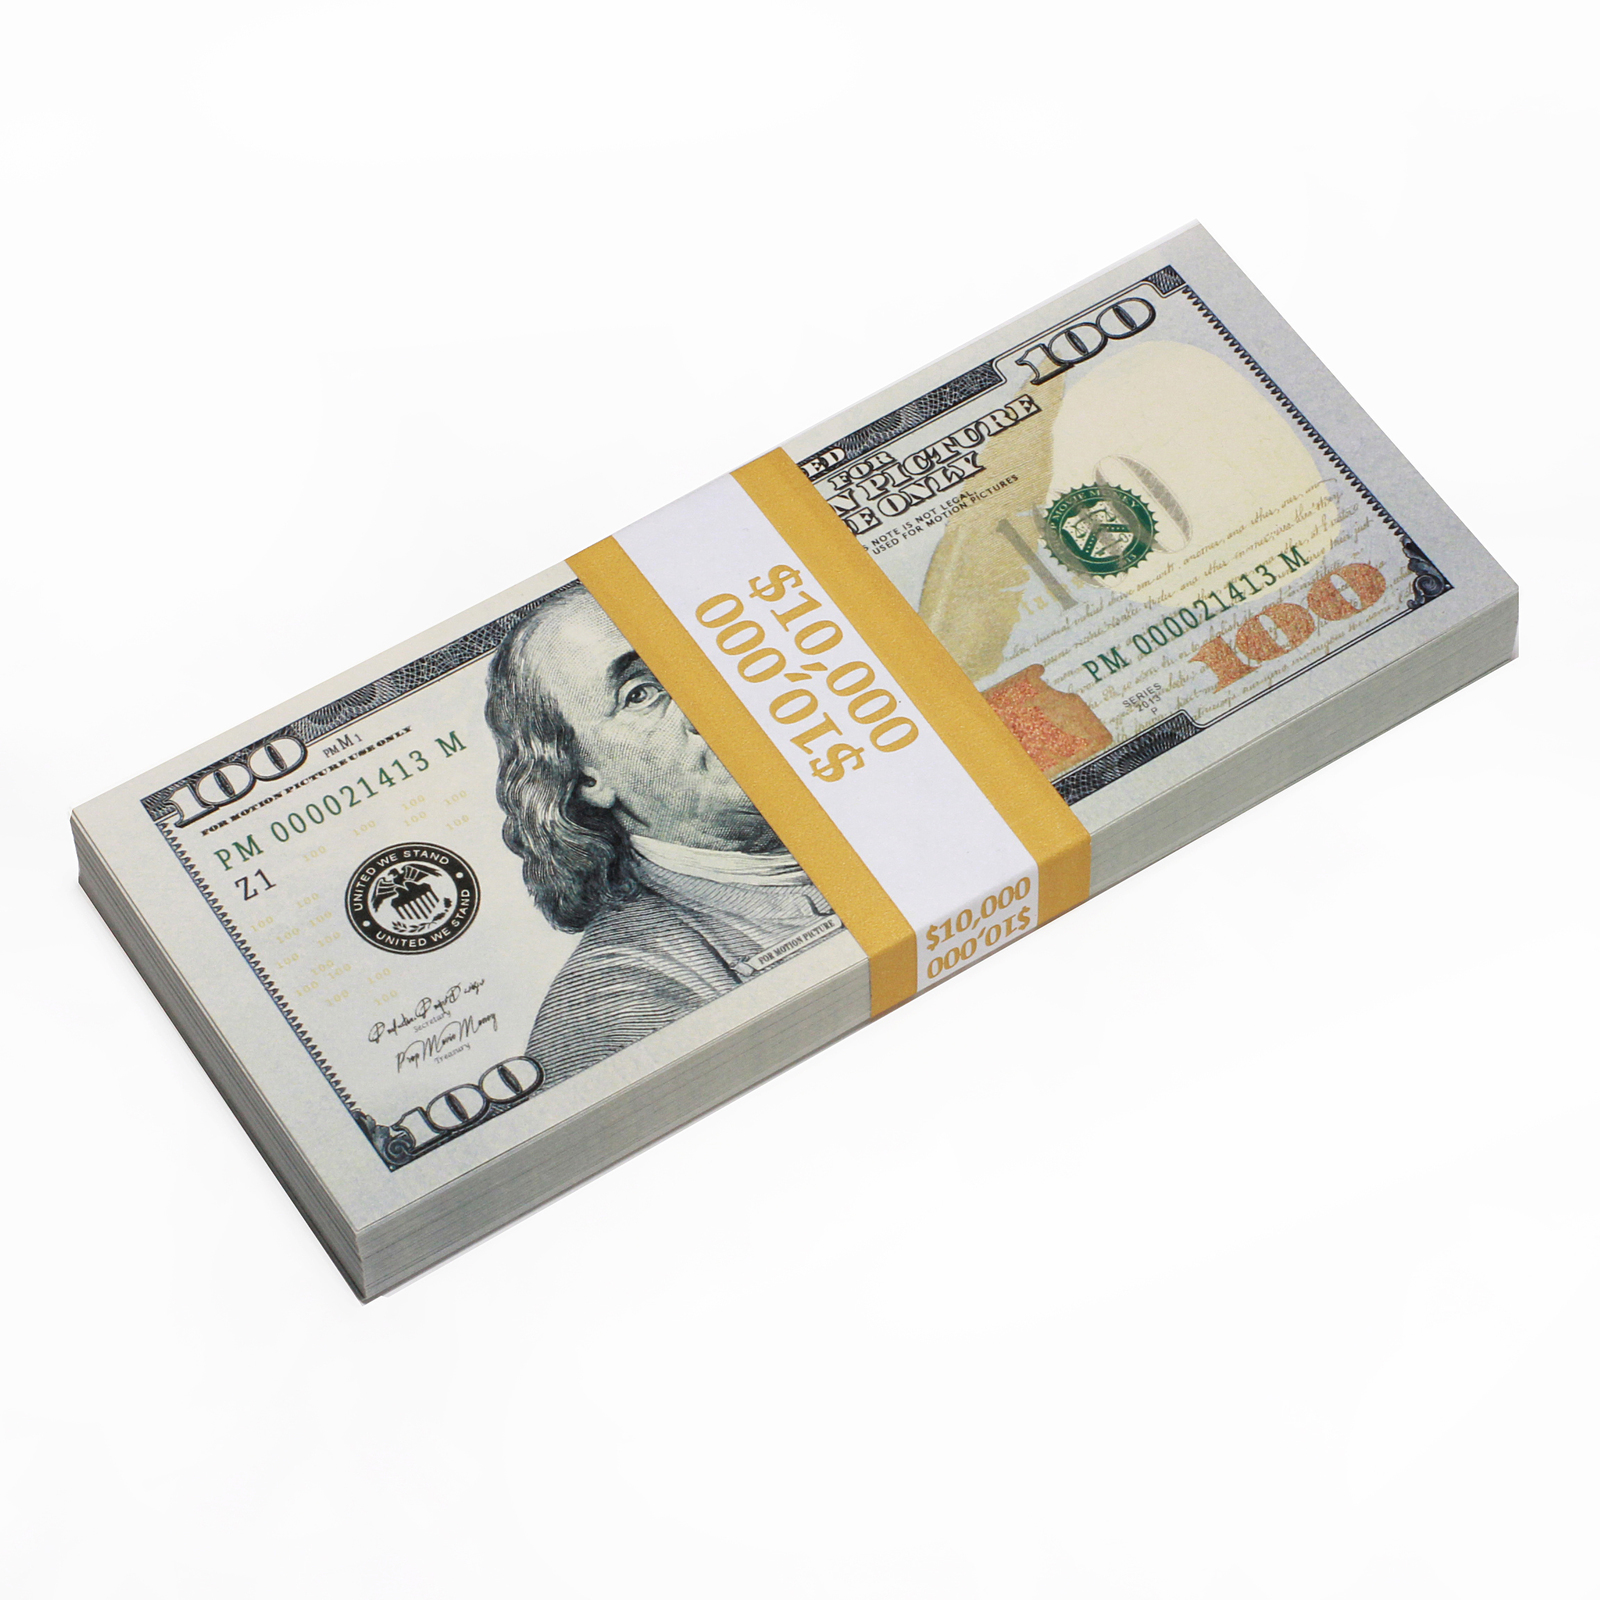 PROP MONEY Real Looking Updated New Style Copy $100s FULL PRINT Stack - Total $1